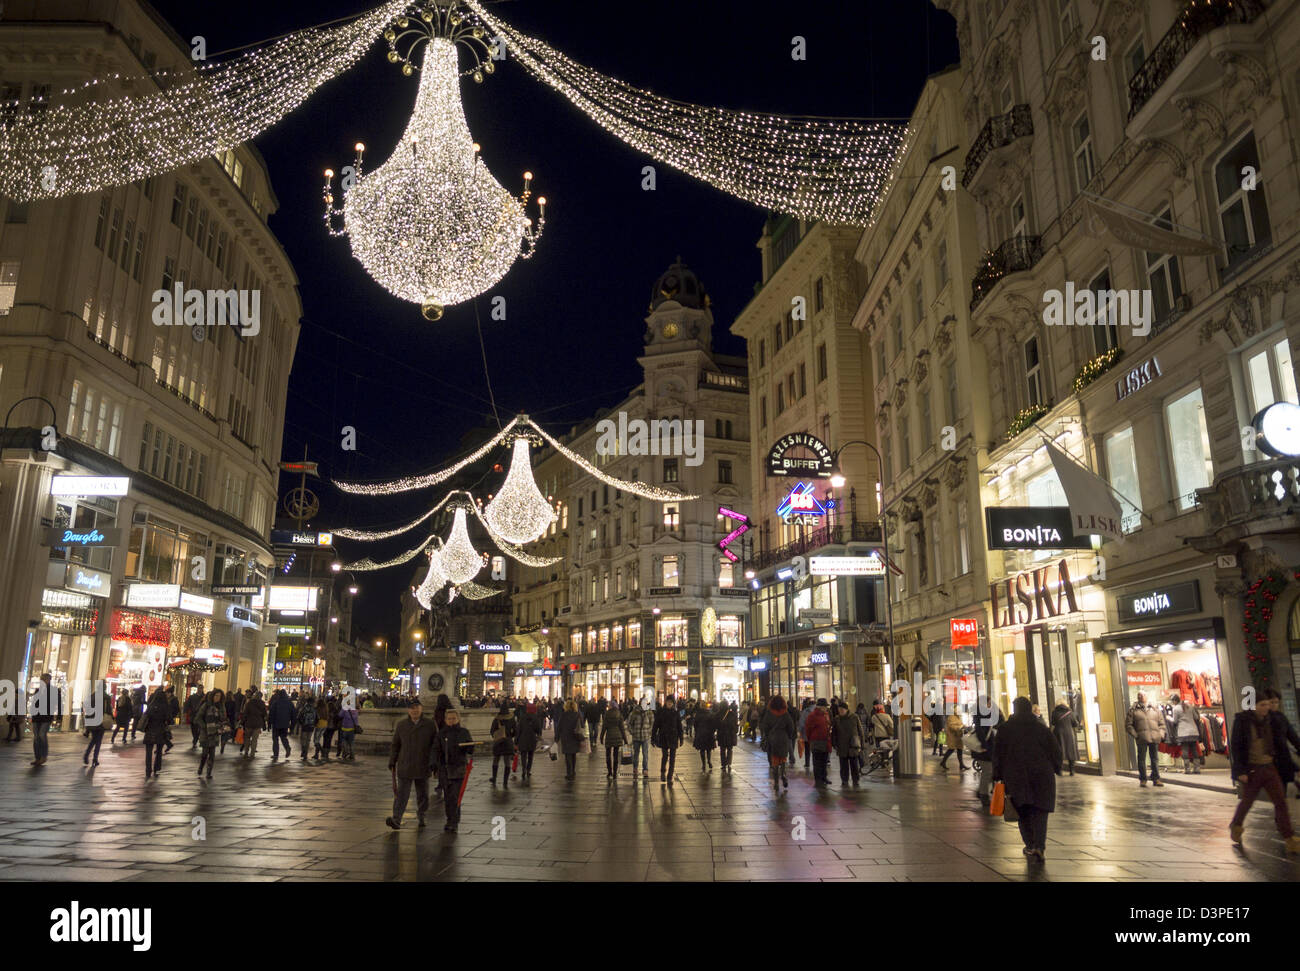 Der Graben lit up for Advent. Christmas chandeliers decorate this famous Vienna shopping street. - Stock Image